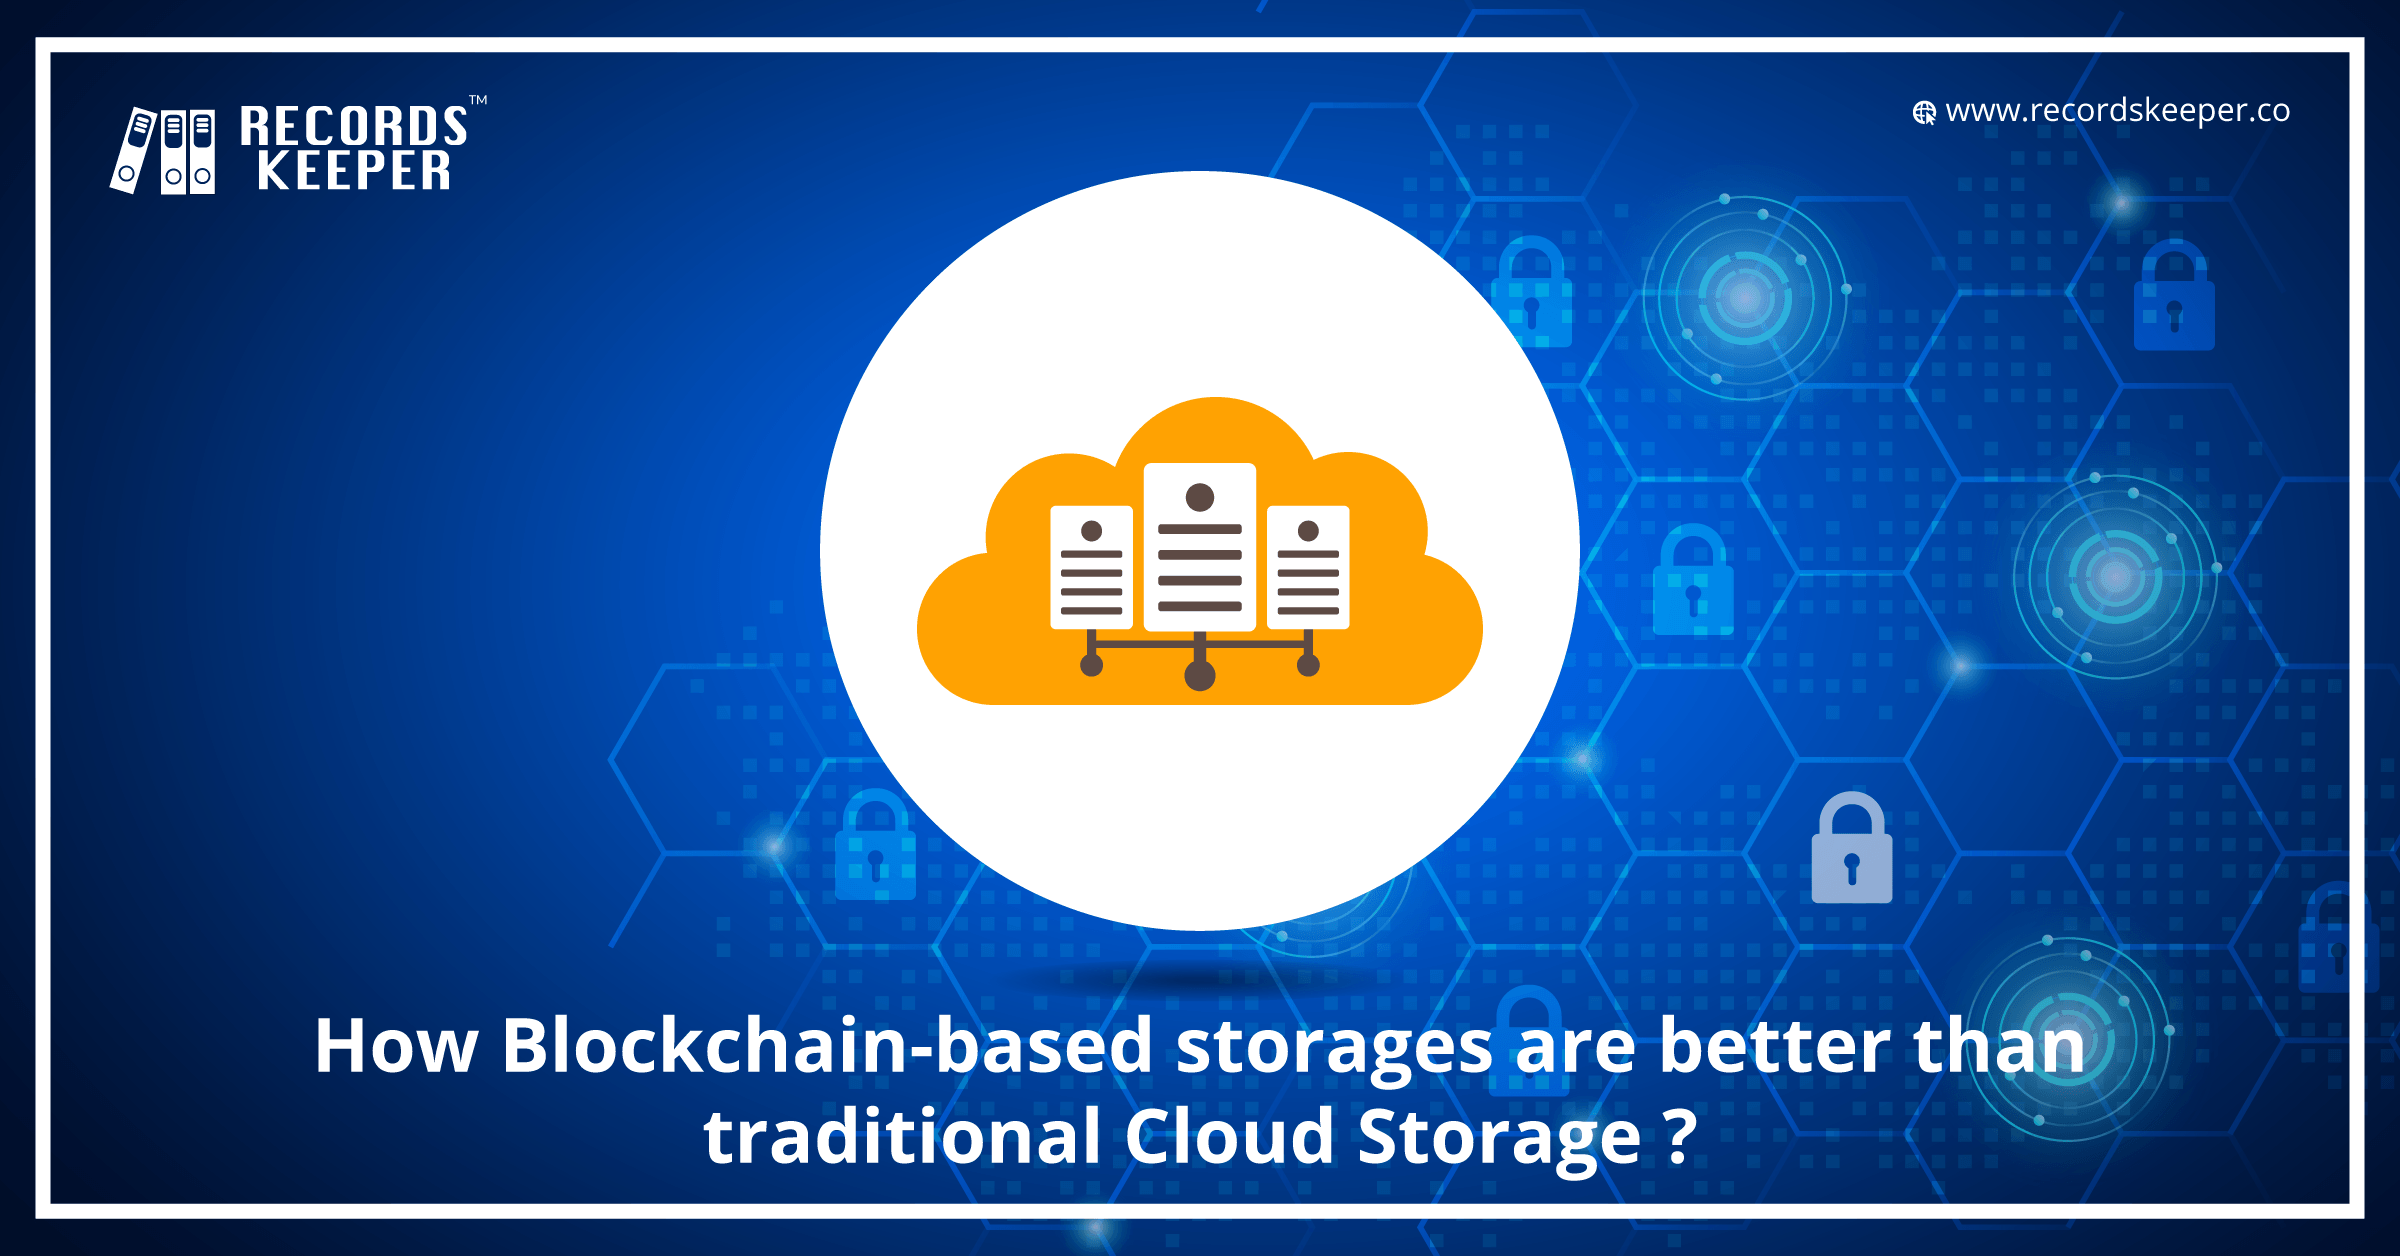 How Blockchain-based storages are better than traditional Cloud Storage?